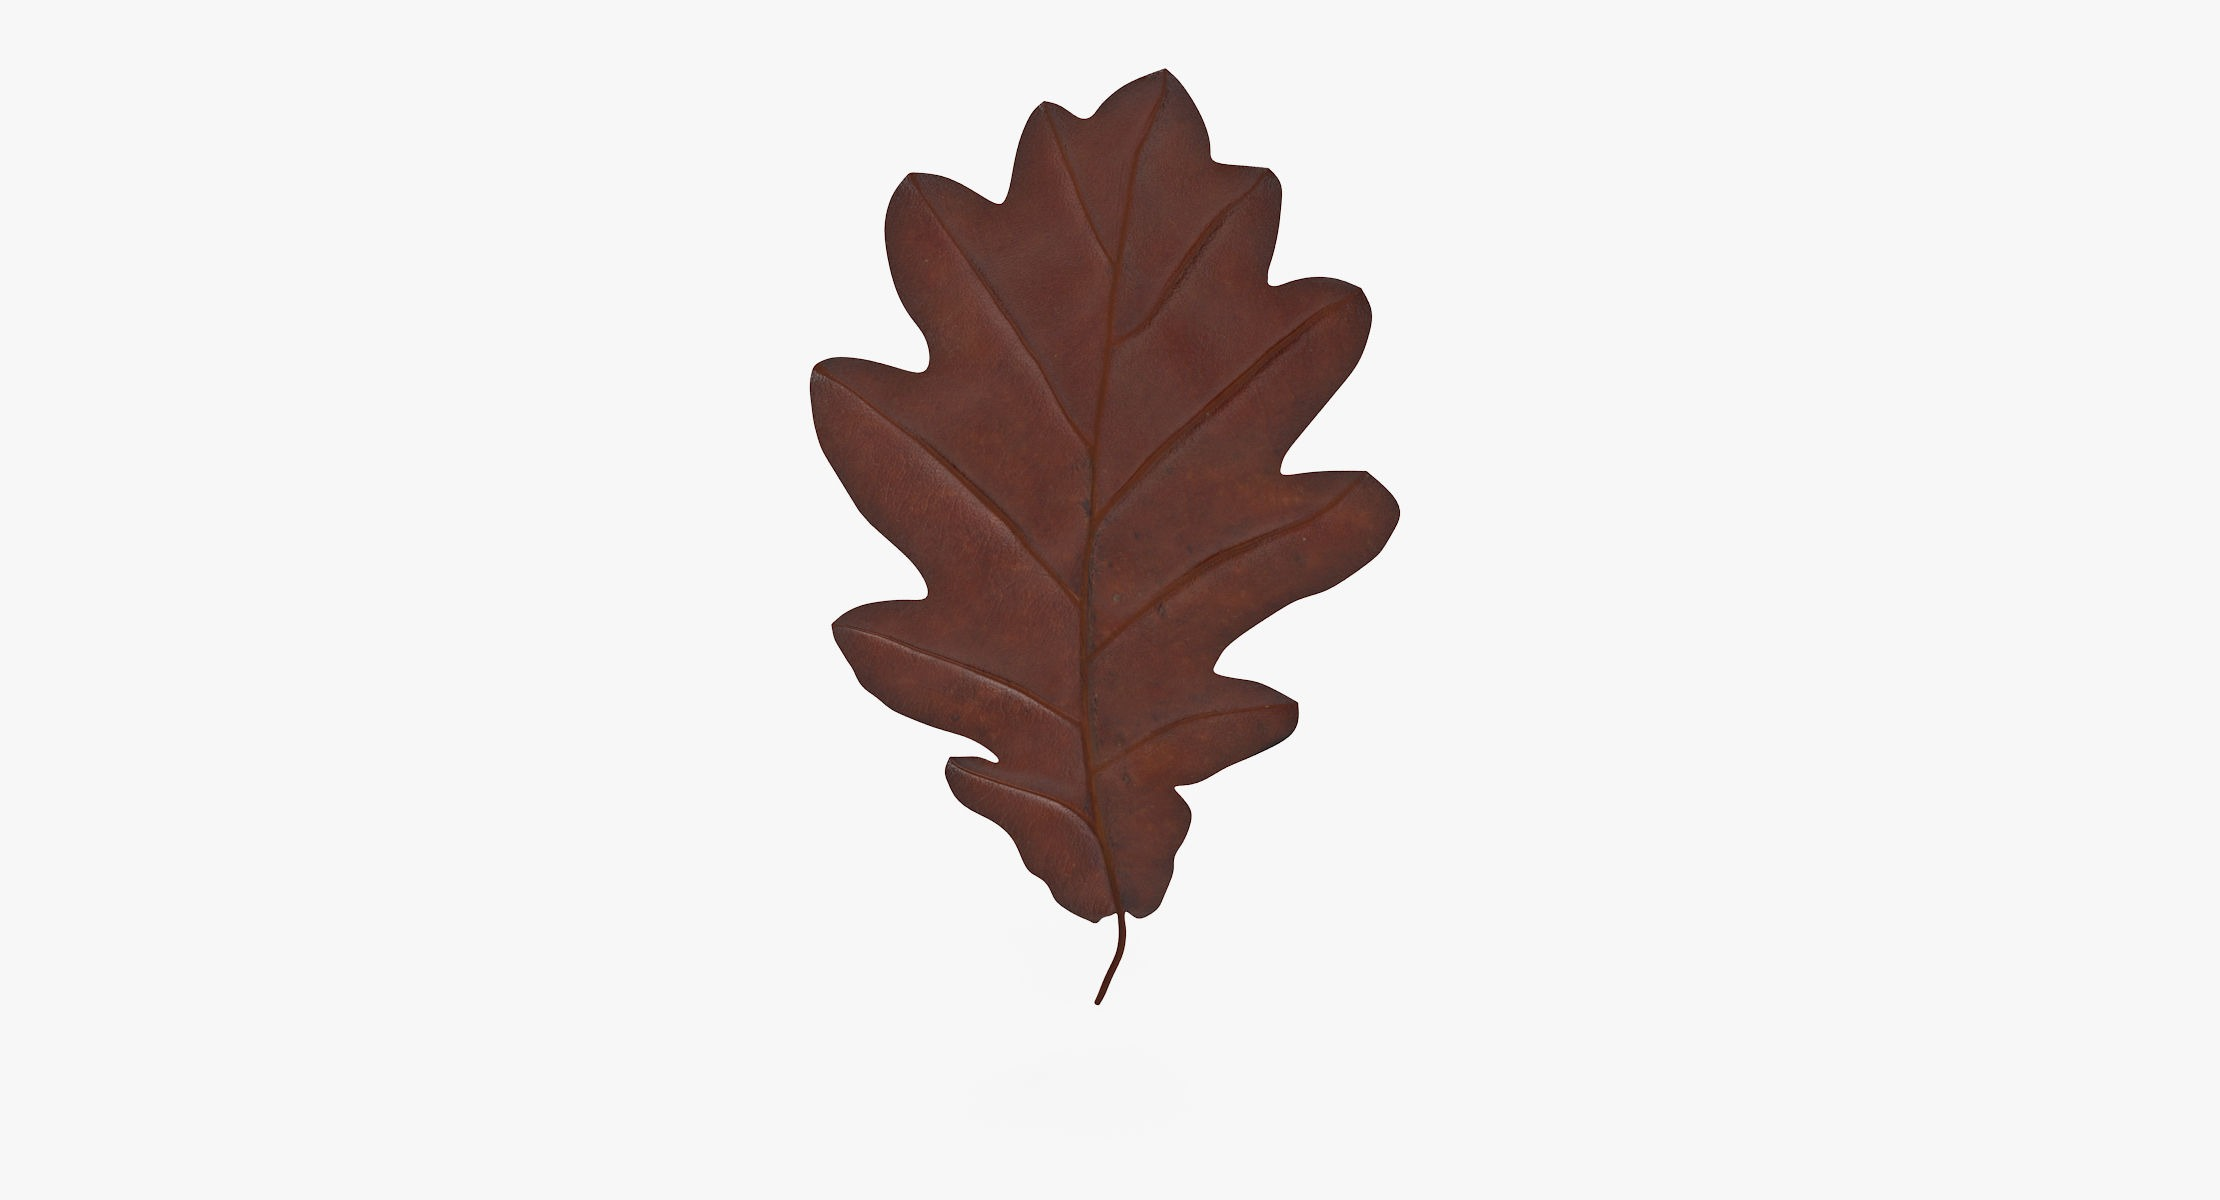 Oak Leaf Brown 01 - reel 1